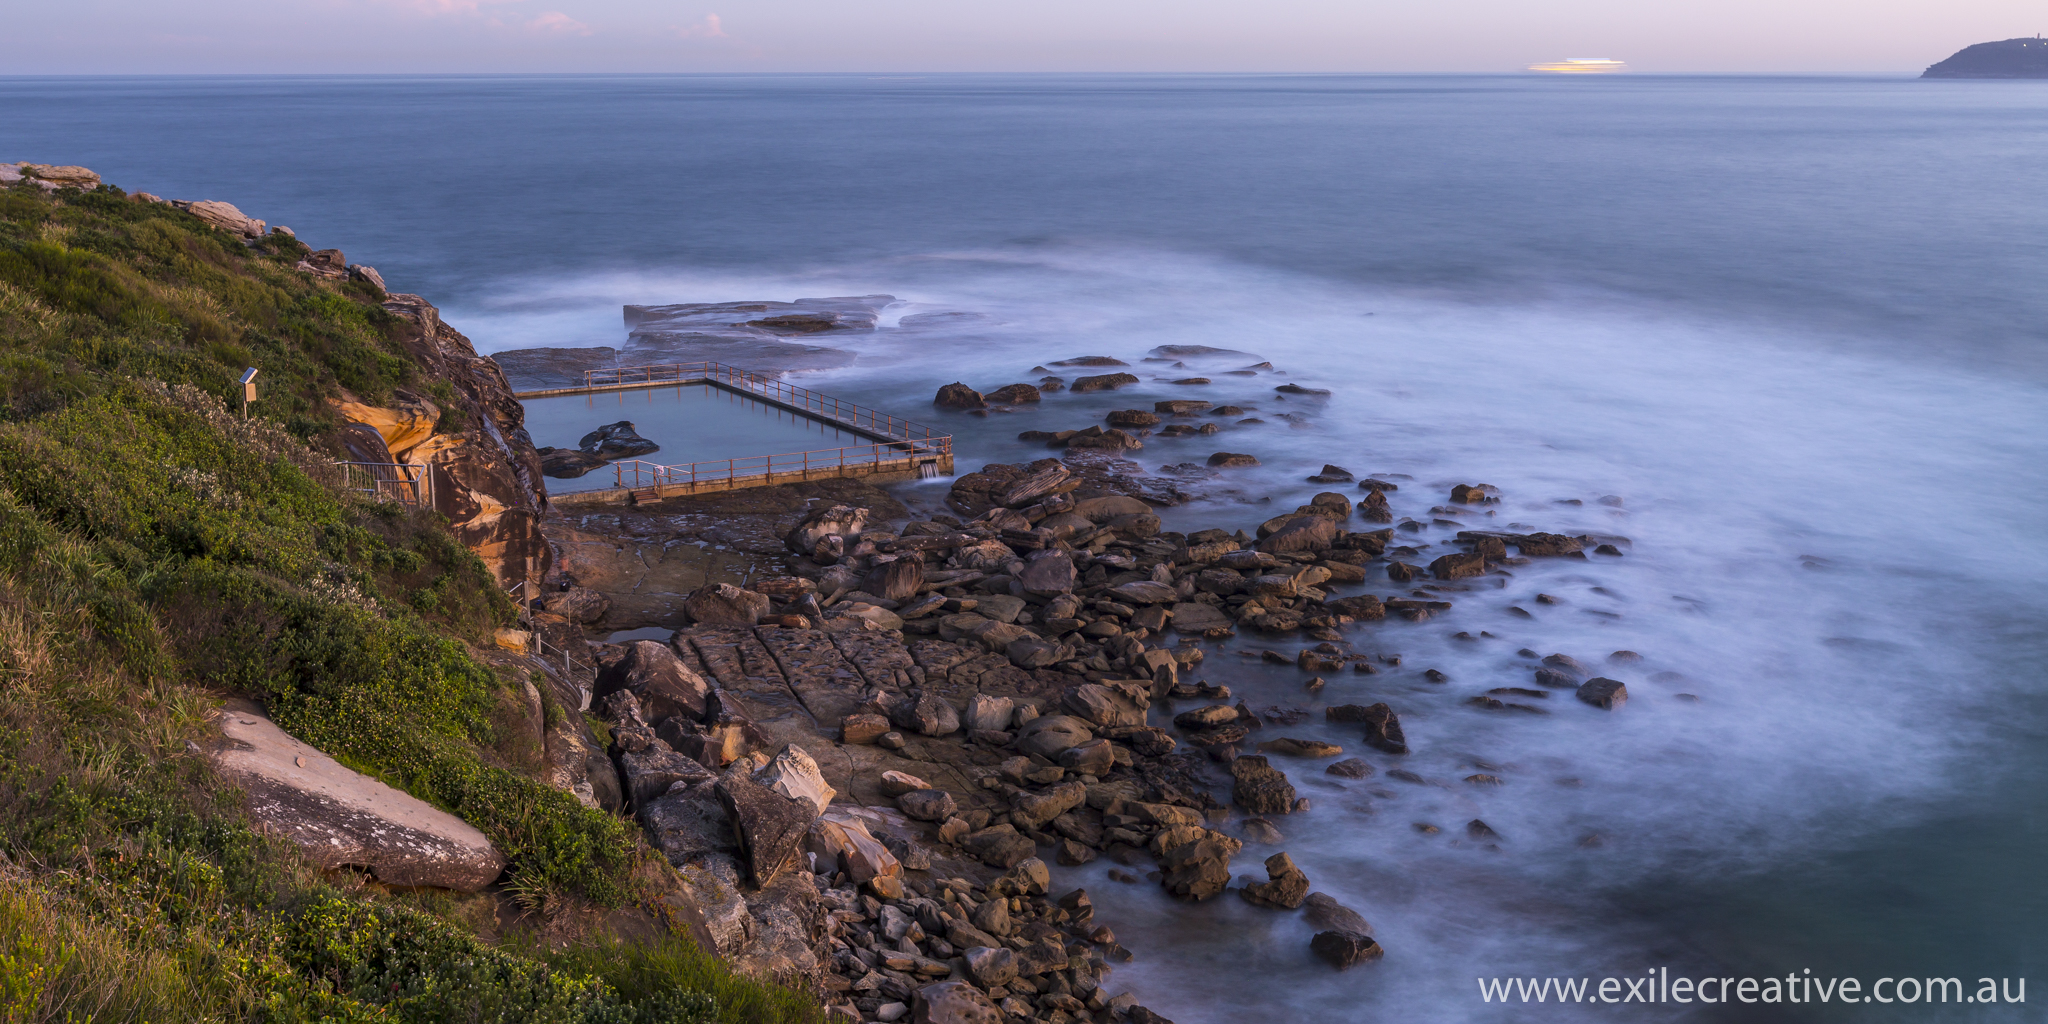 The rock pool at North Curl Curl